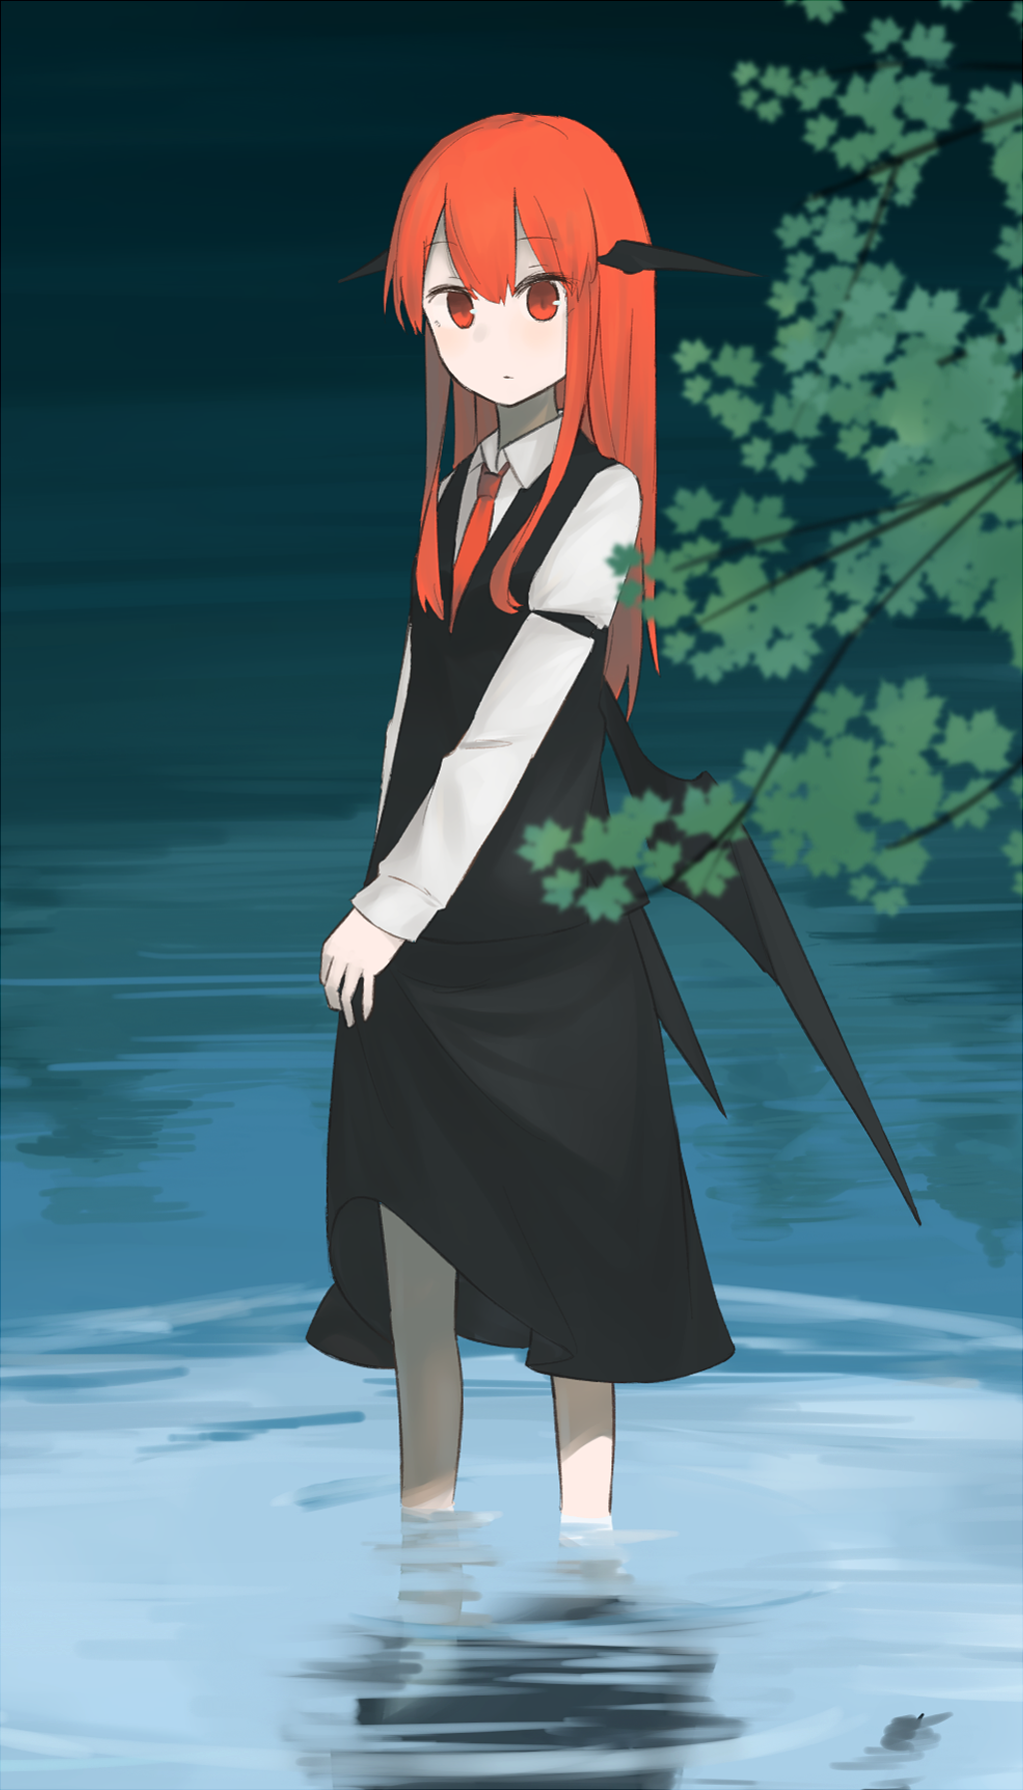 1girl :/ armband bat_wings dress_shirt expressionless eyebrows_visible_through_hair full_body hair_between_eyes head_wings highres hinami047 koakuma long_hair long_skirt long_sleeves looking_at_viewer low_wings necktie outdoors red_eyes red_neckwear redhead reflection shirt sidelocks skirt skirt_lift skirt_set solo standing touhou tree vest water wings